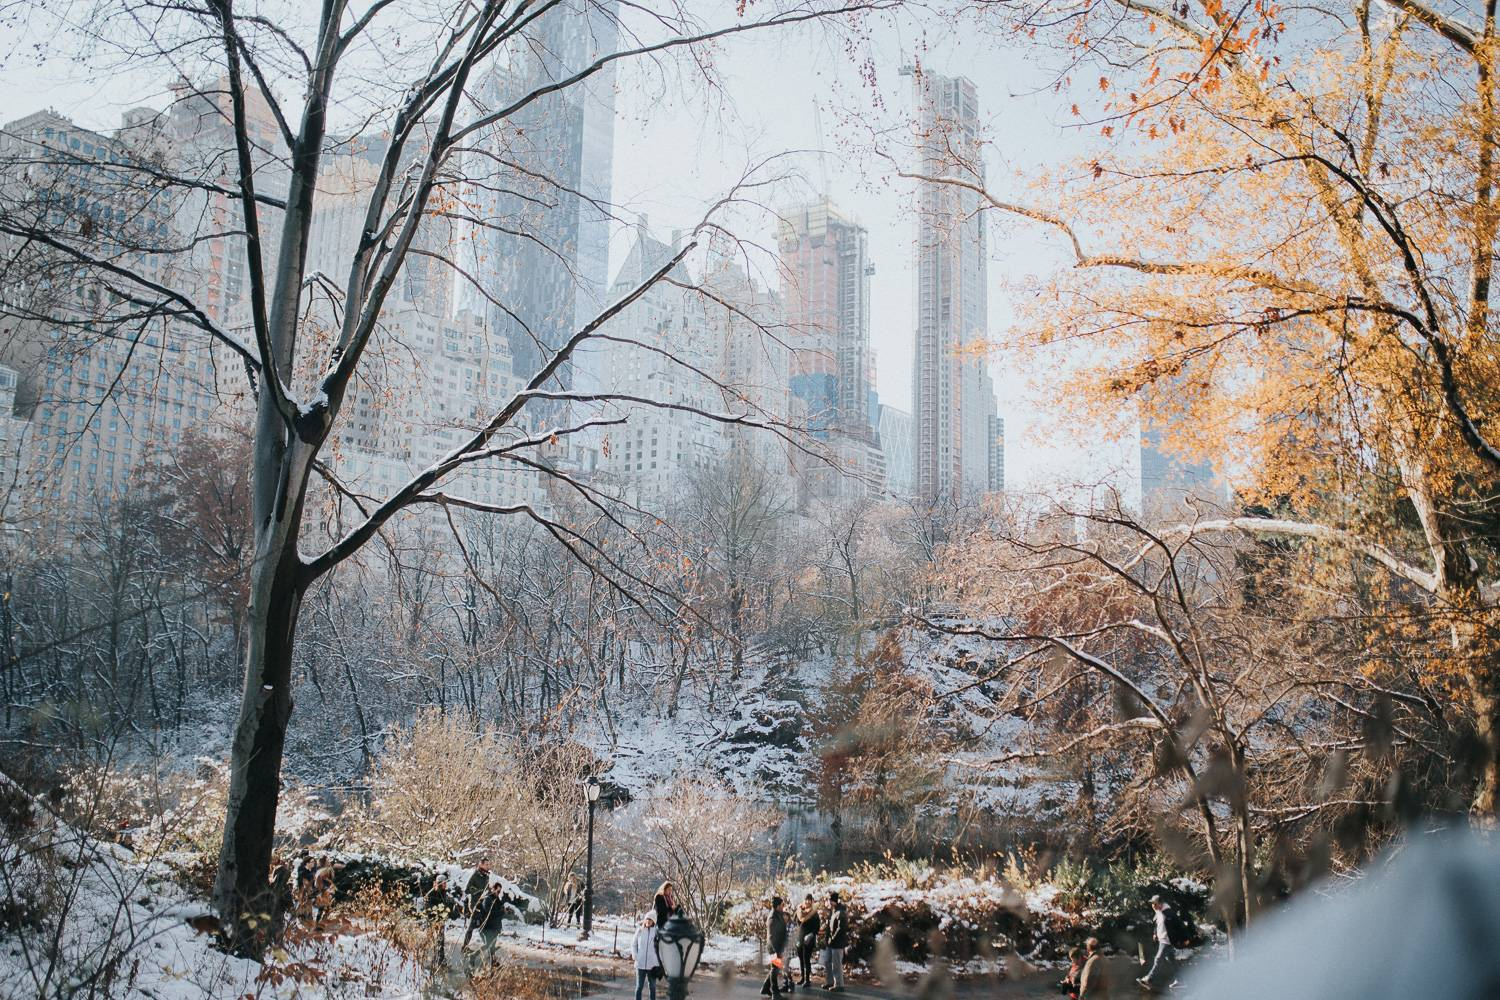 Image of Central Park and city skyline after a snowfall